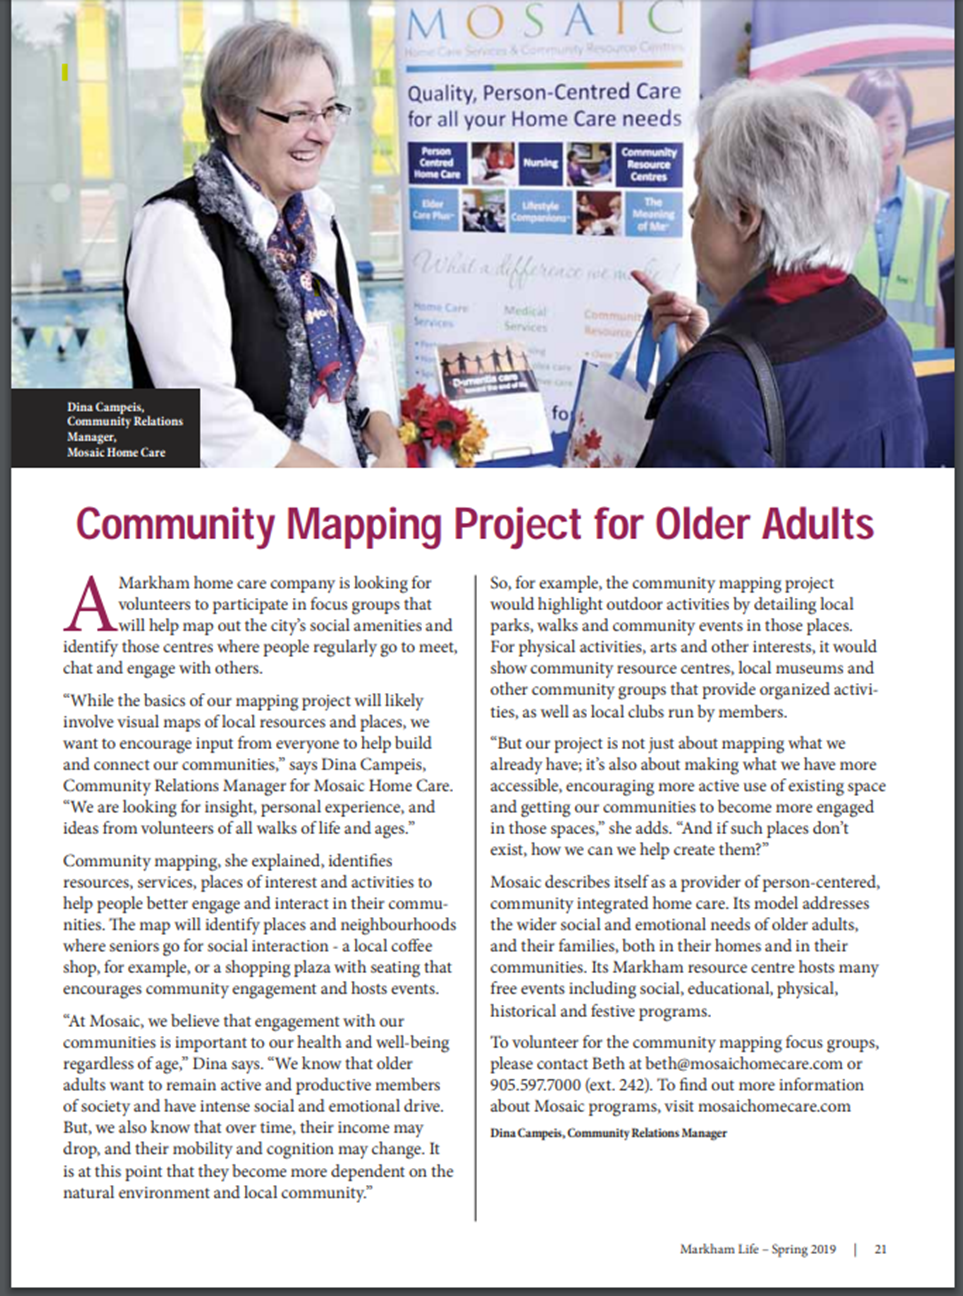 Mosaic in the Media - Mosaic Home Care